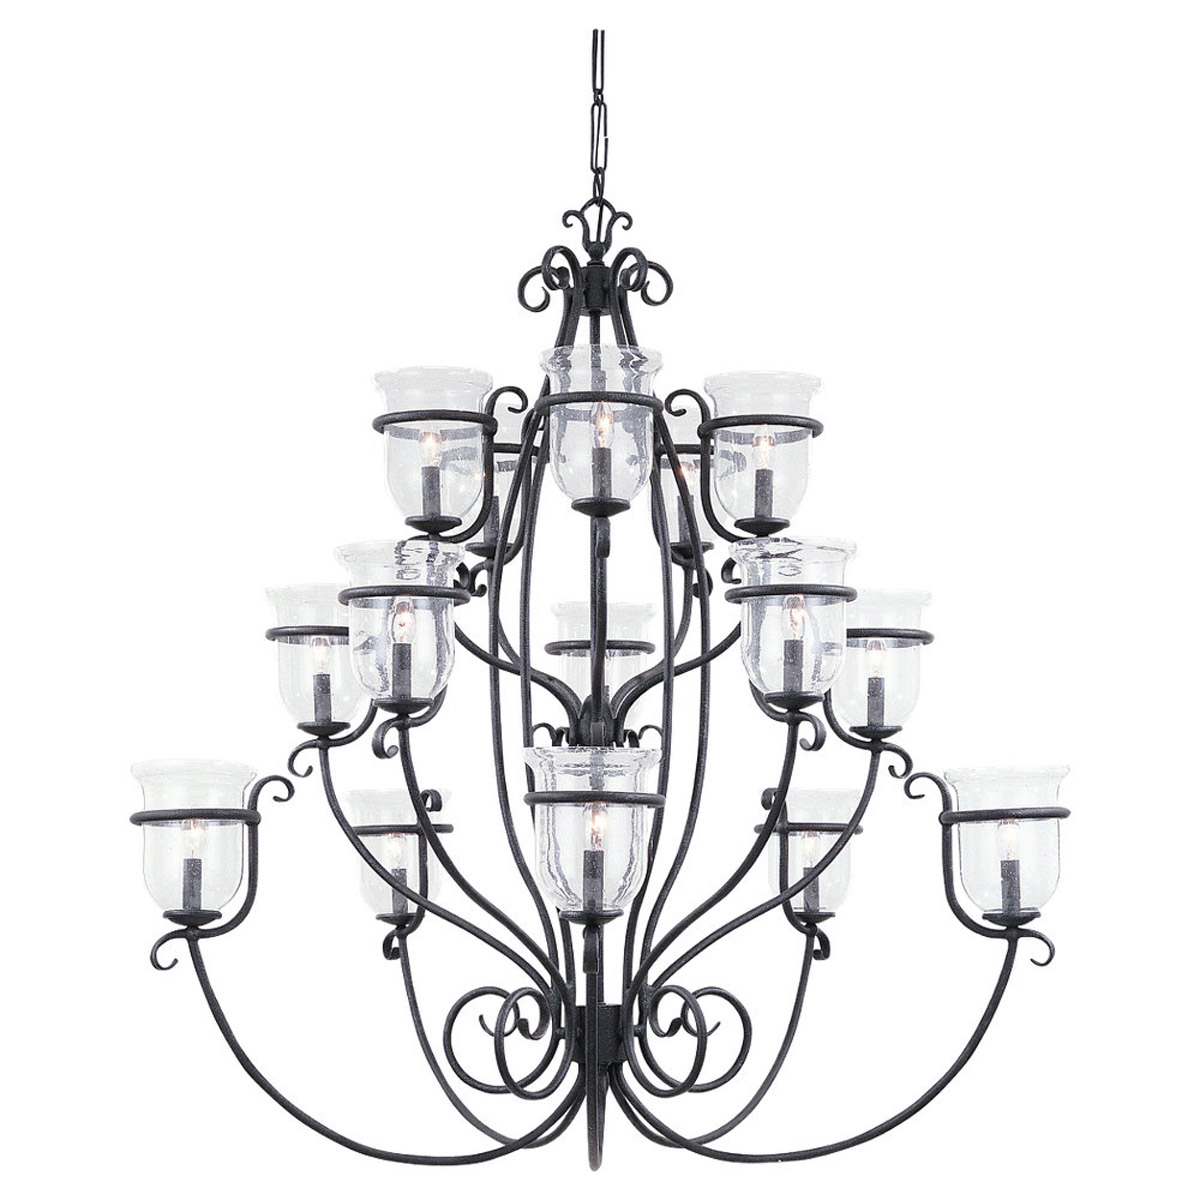 Sea Gull Lighting Manor House 15 Light Chandelier in Weathered Iron 3405-07 photo